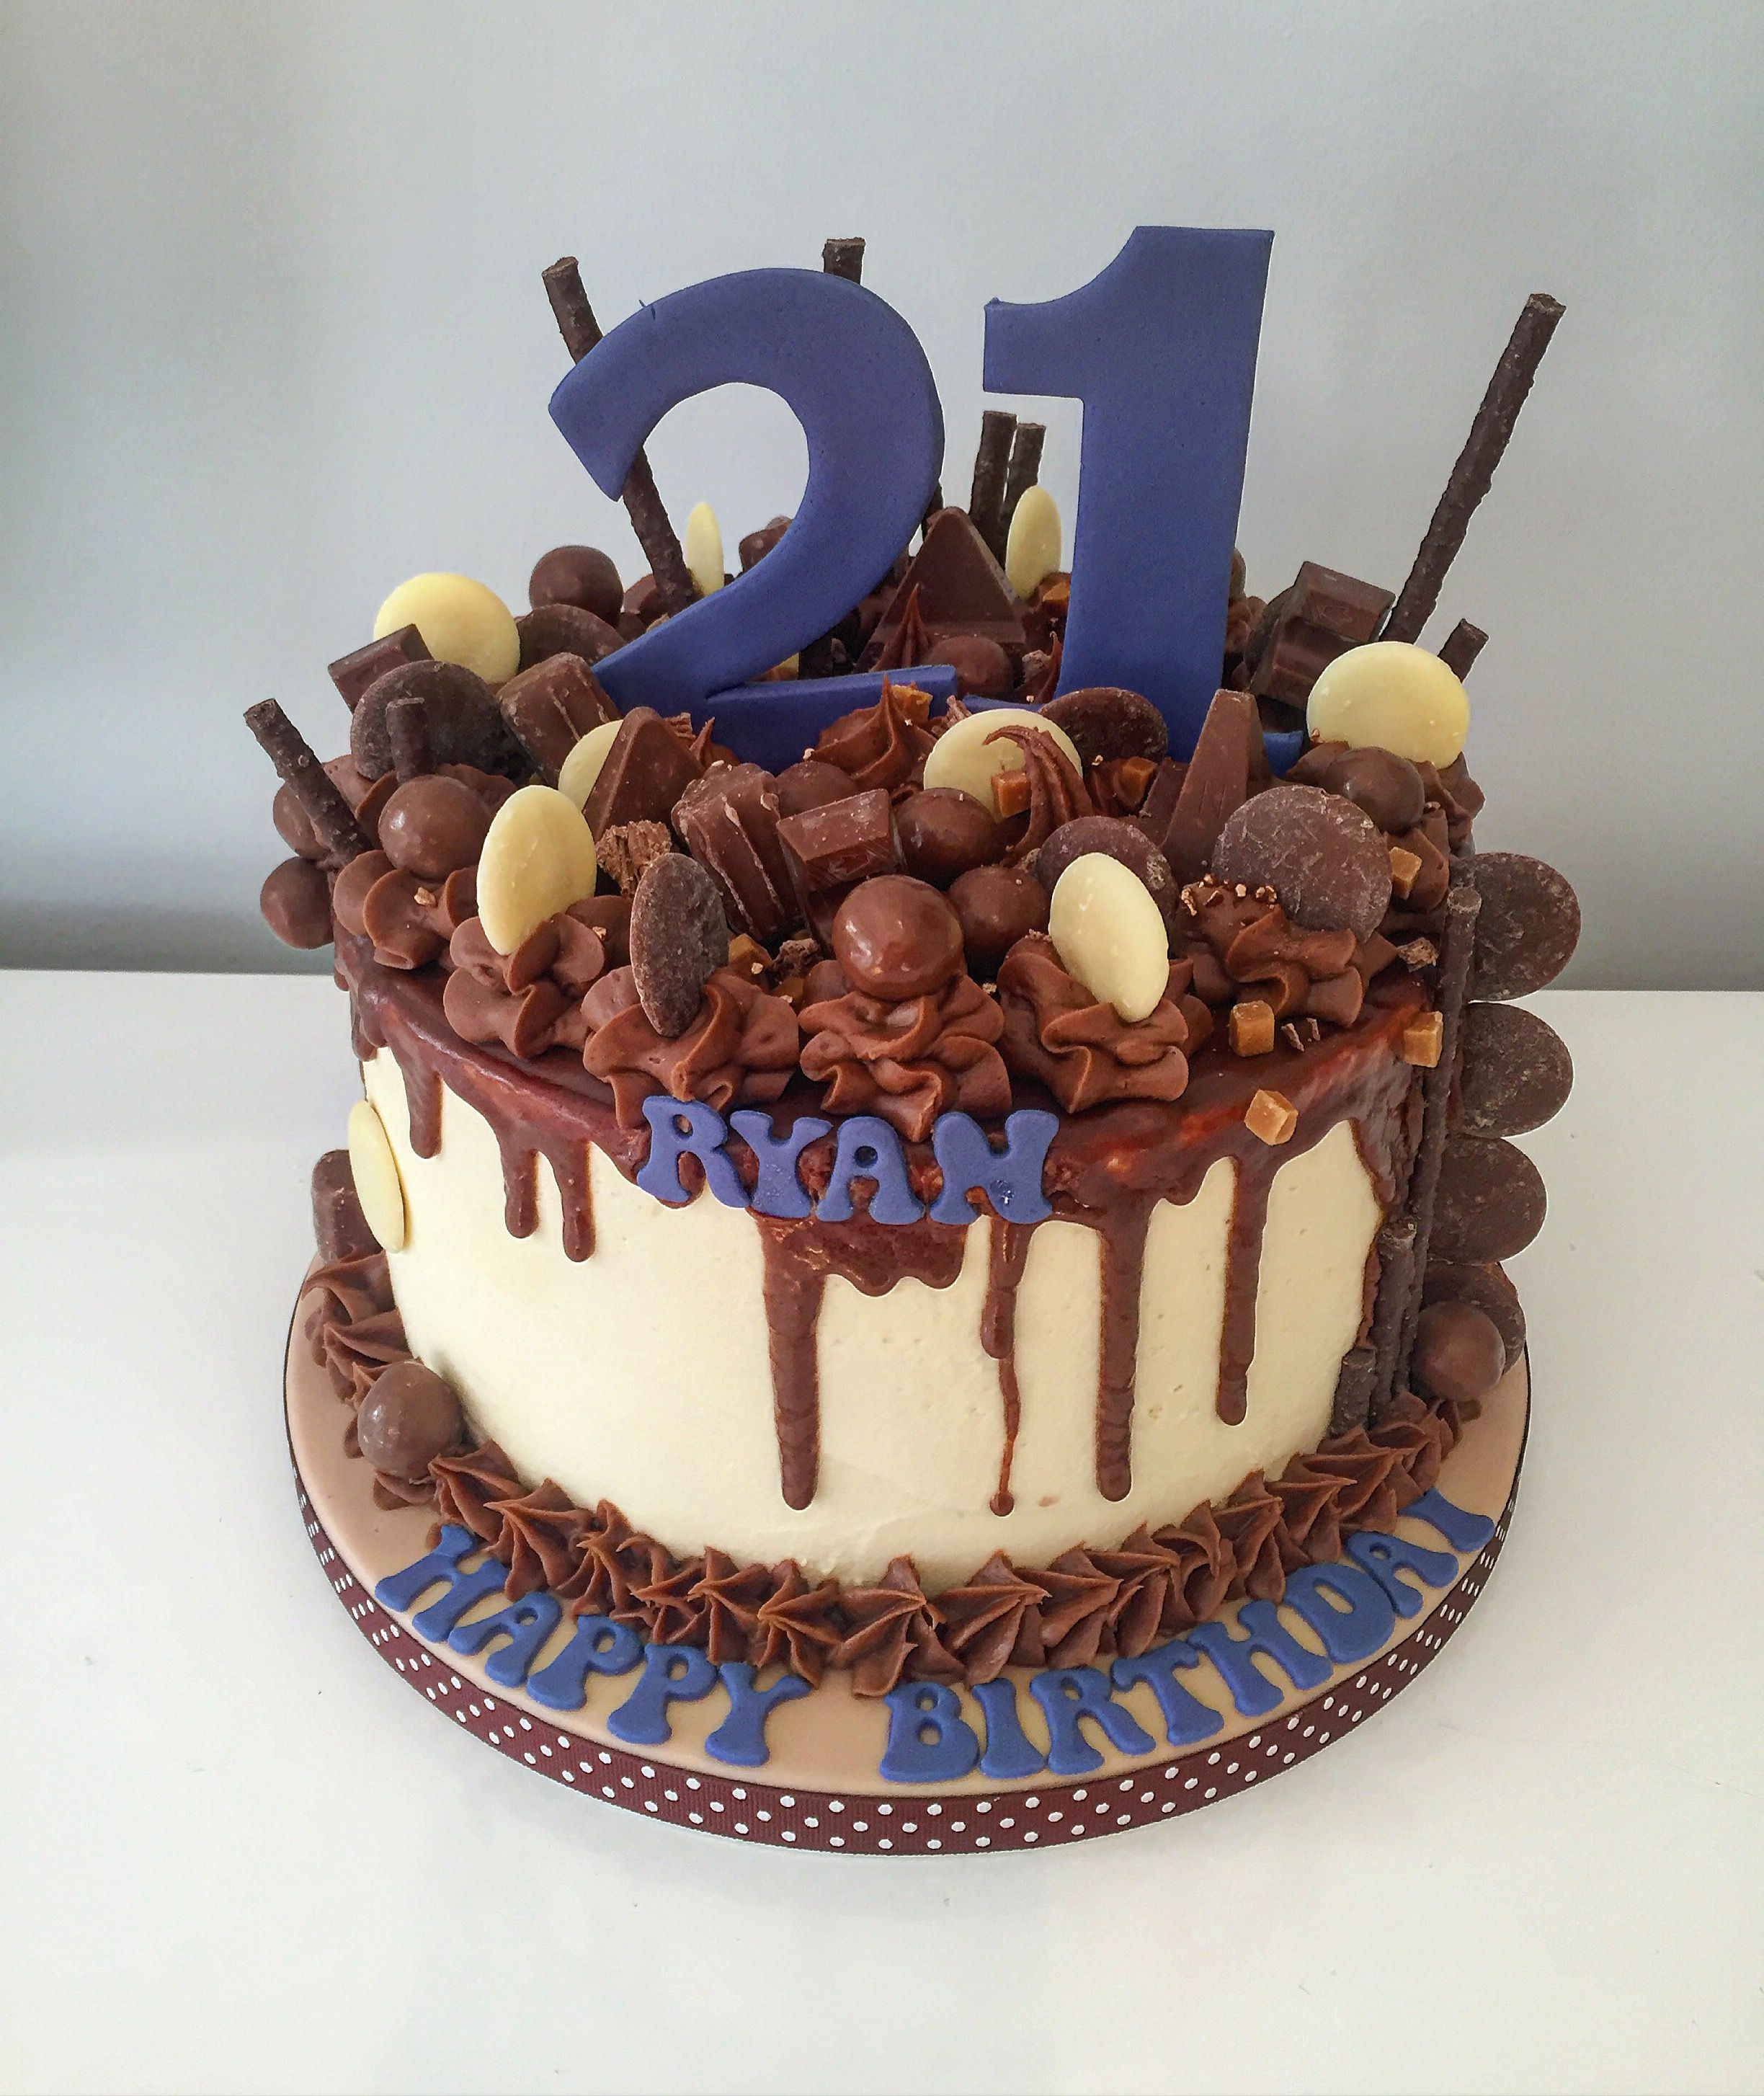 21st Birthday Drip Cake Chocolate Buttons Malteaser Toblerone And Match Sticks